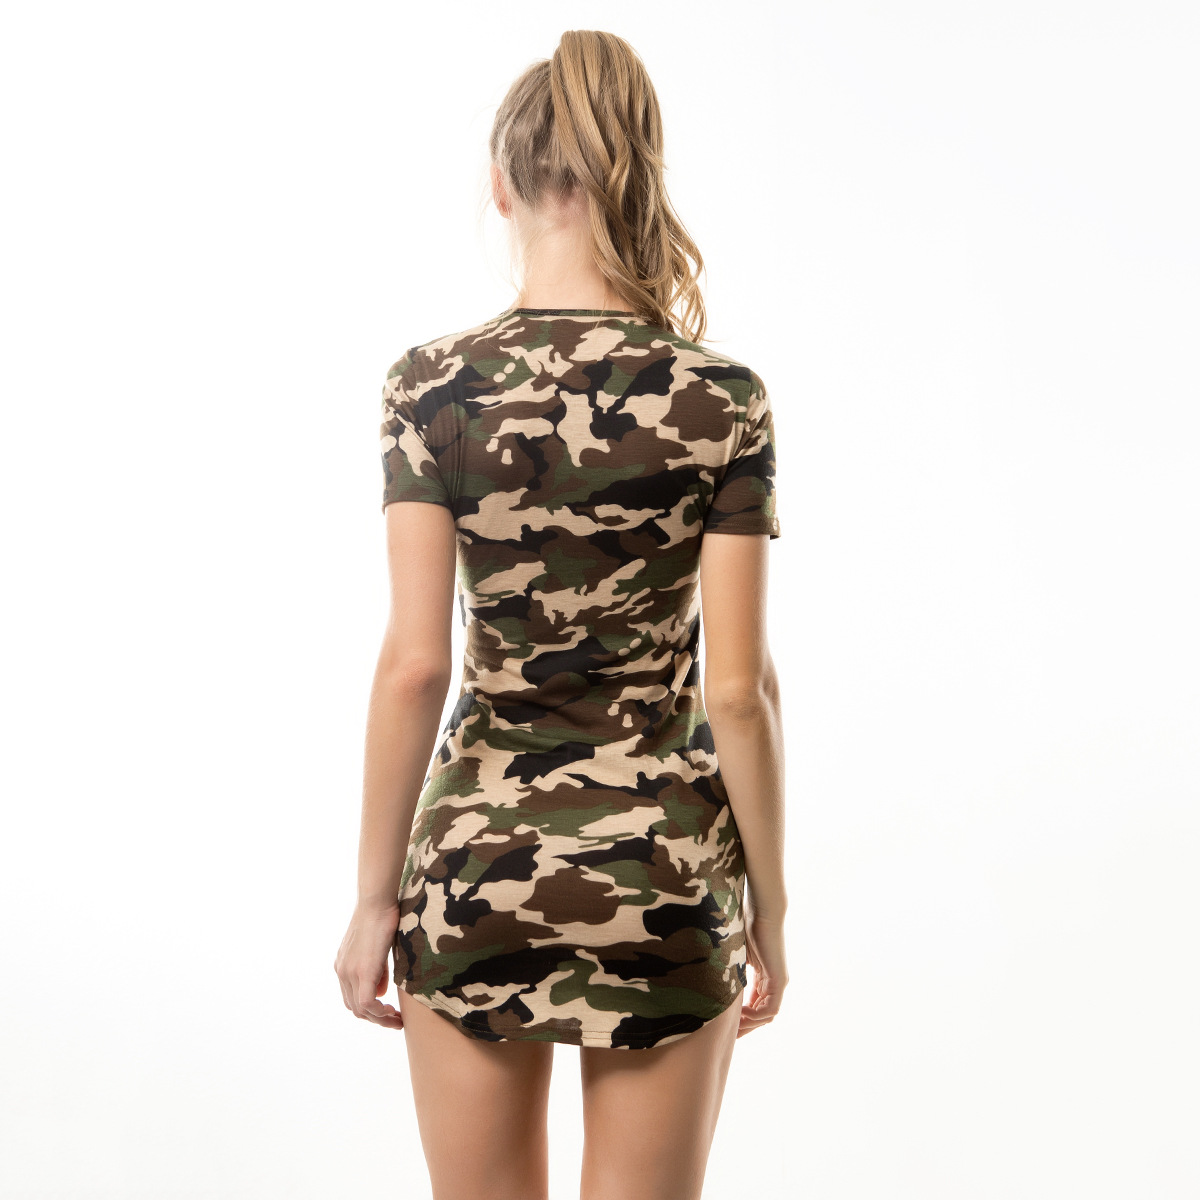 86c4b747fe8 Sexy Pink Camouflage Bodycon Mini Dress Hot Woman Casual Tshirt Dress